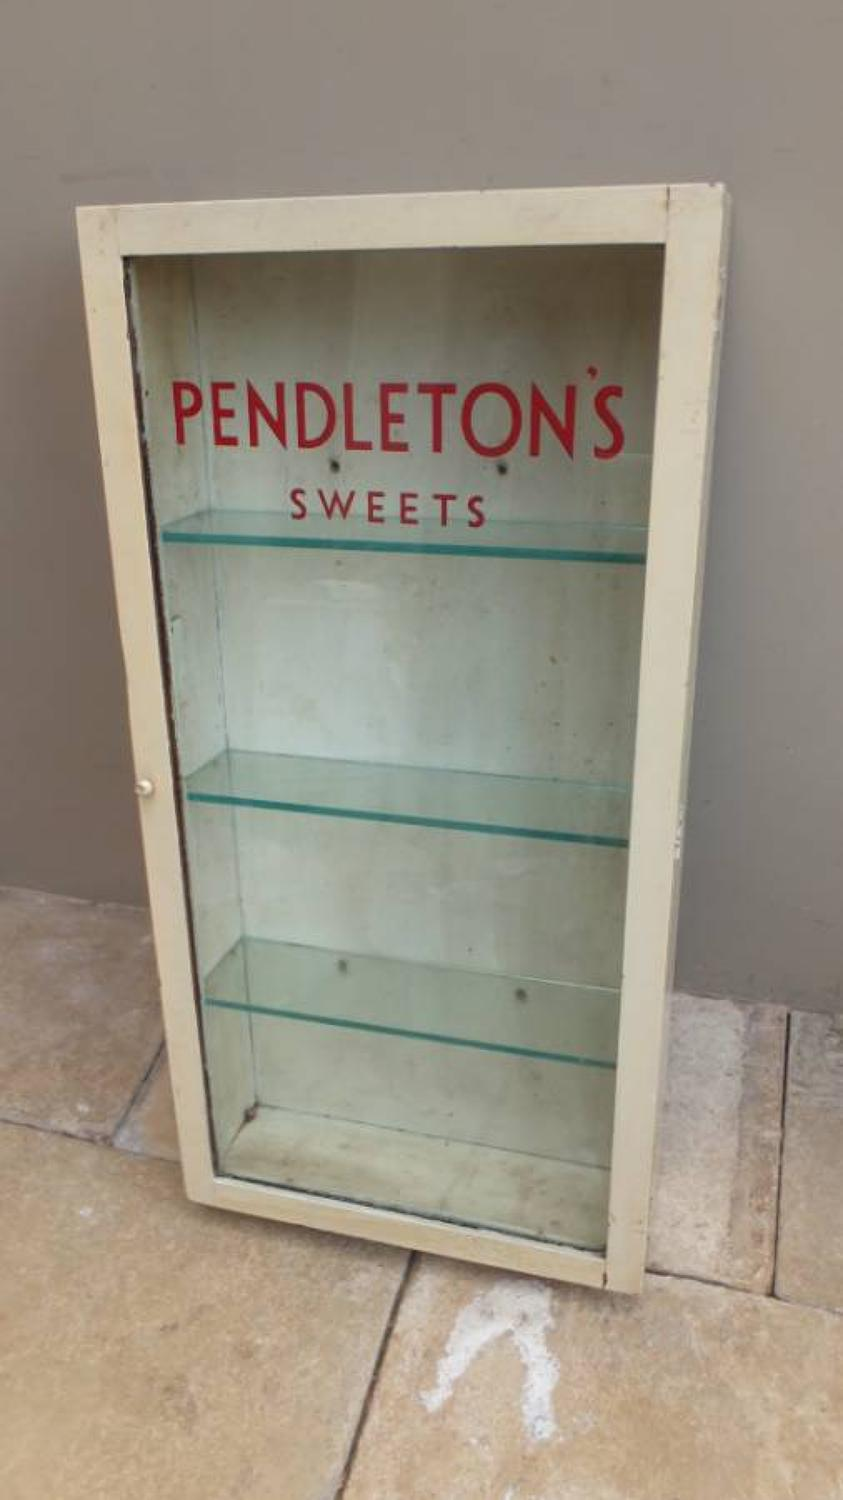 Early 20th Century Advertising Cupboard - Pendletons Sweets